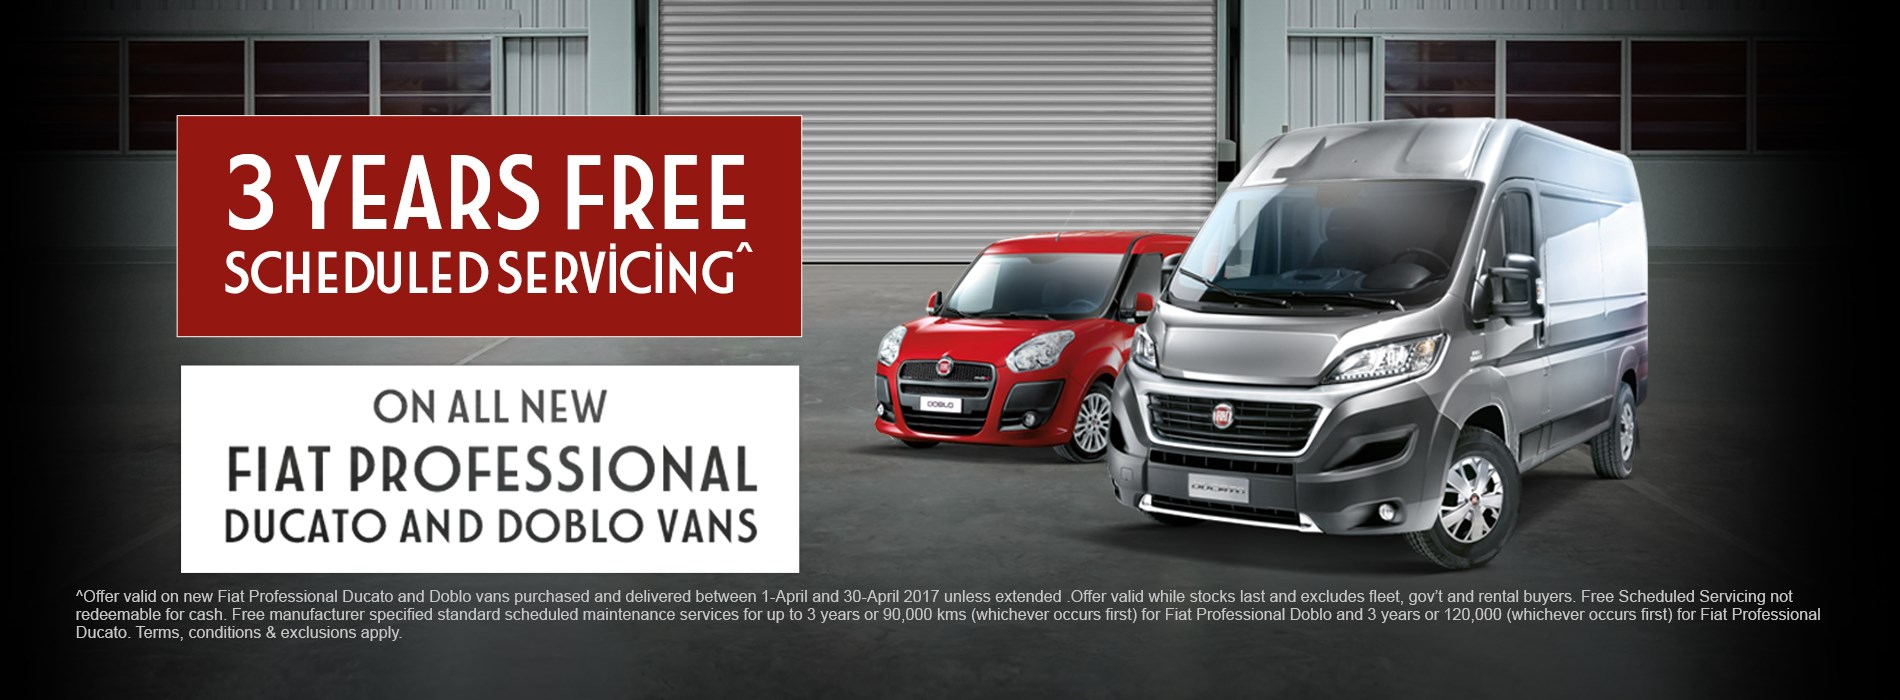 Fiat Professional Range 3 years free servicing offer